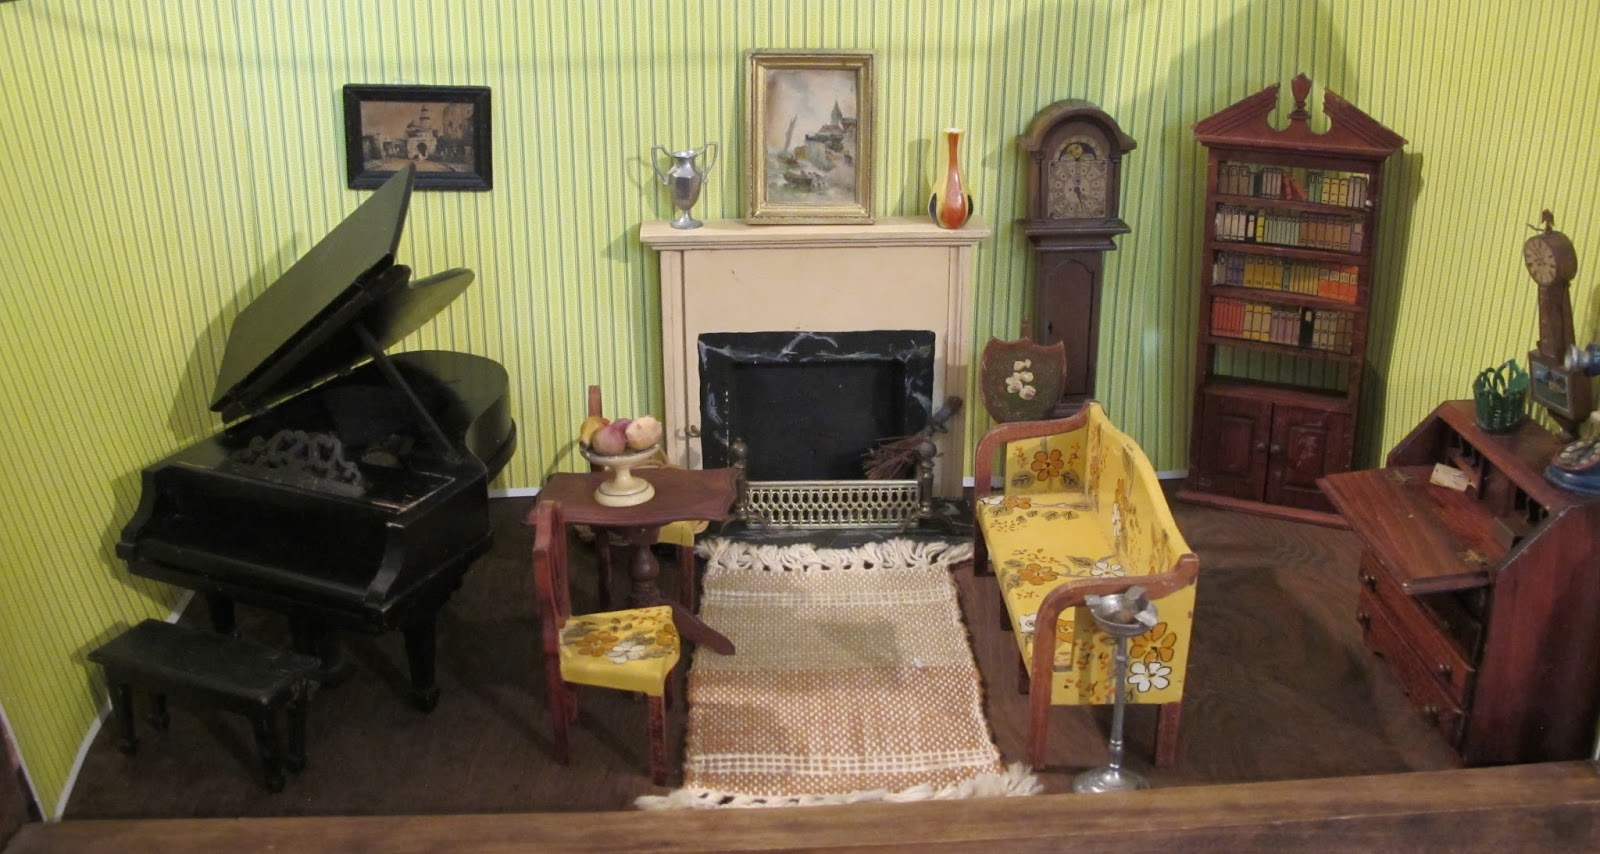 Susan\'s Mini Homes: Contents of a 1930s dollhouse